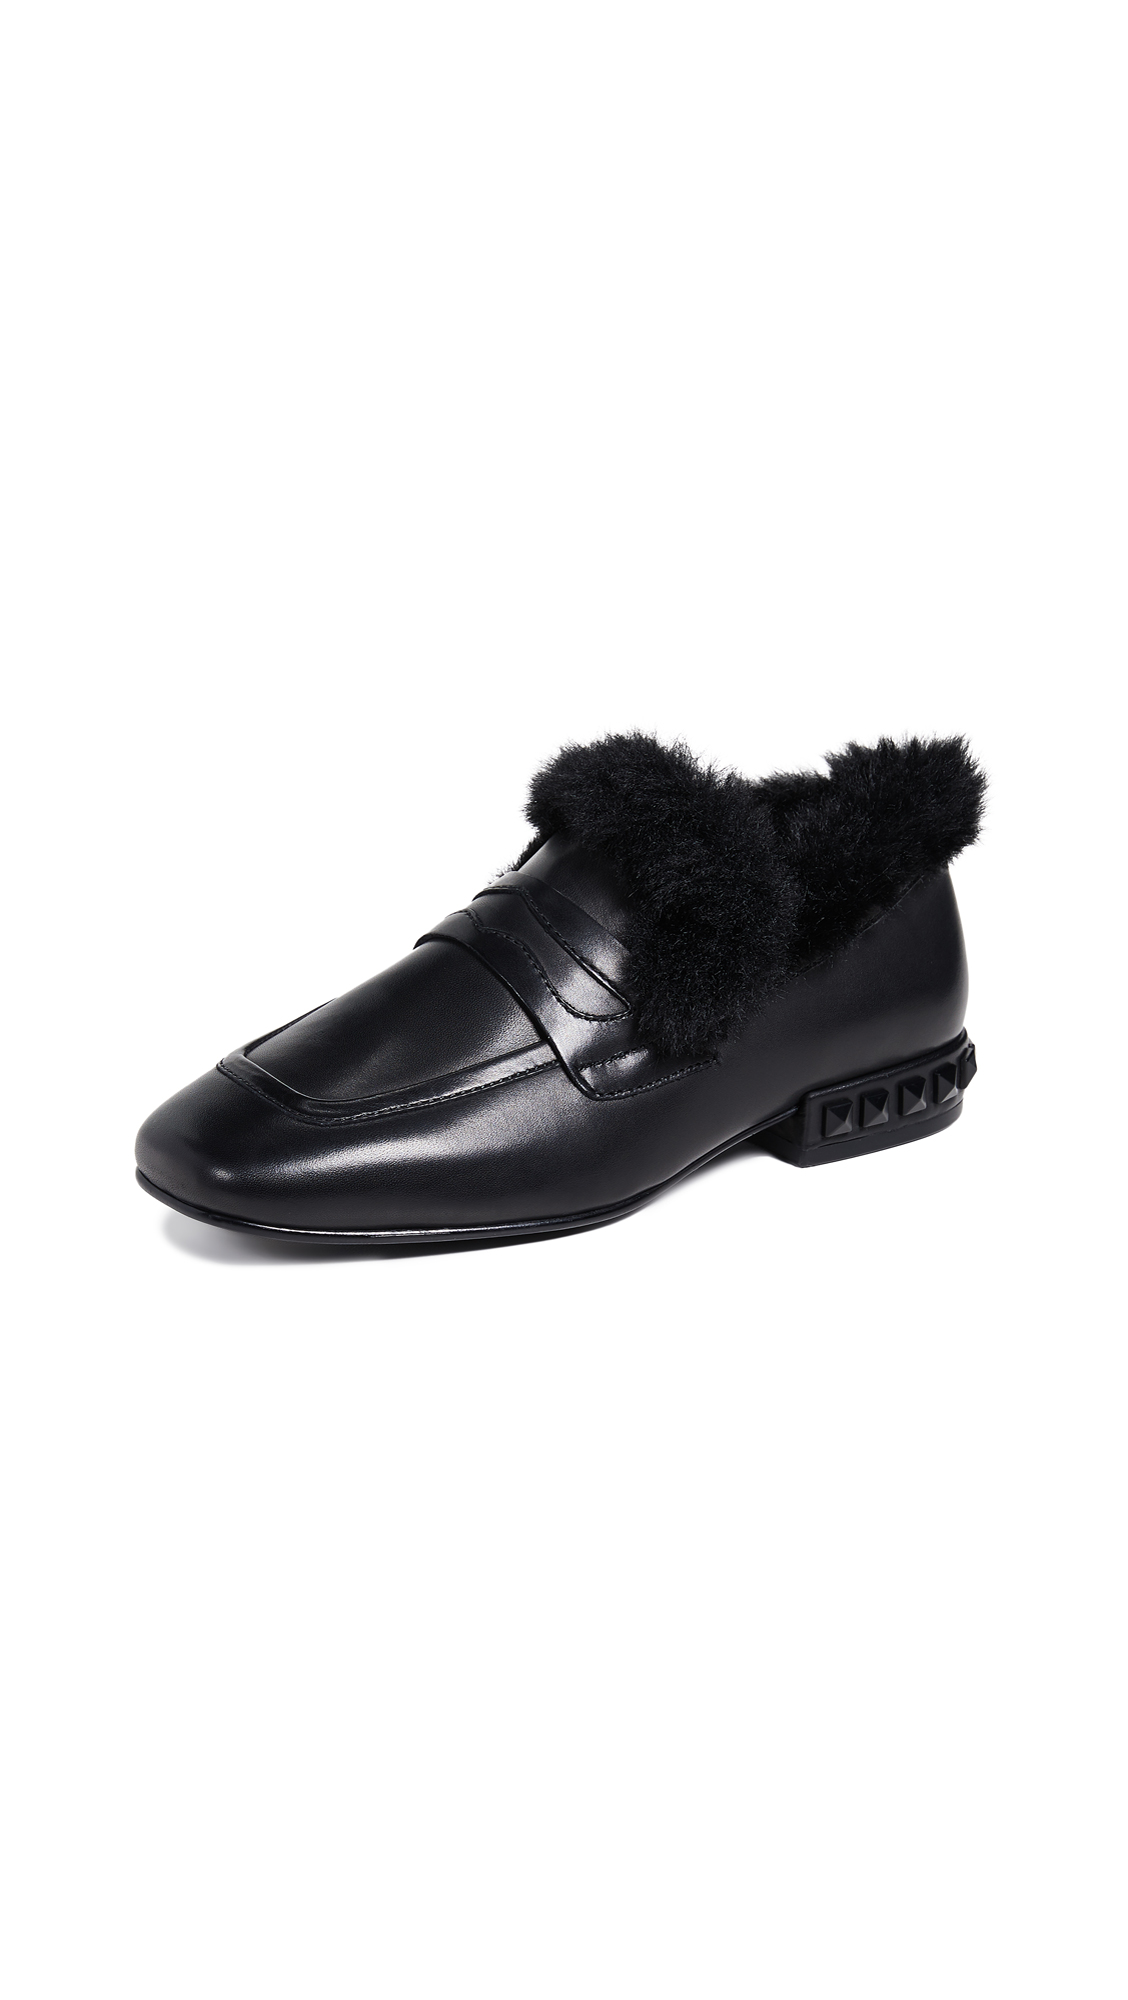 Ash Ever Loafers - Black/Black